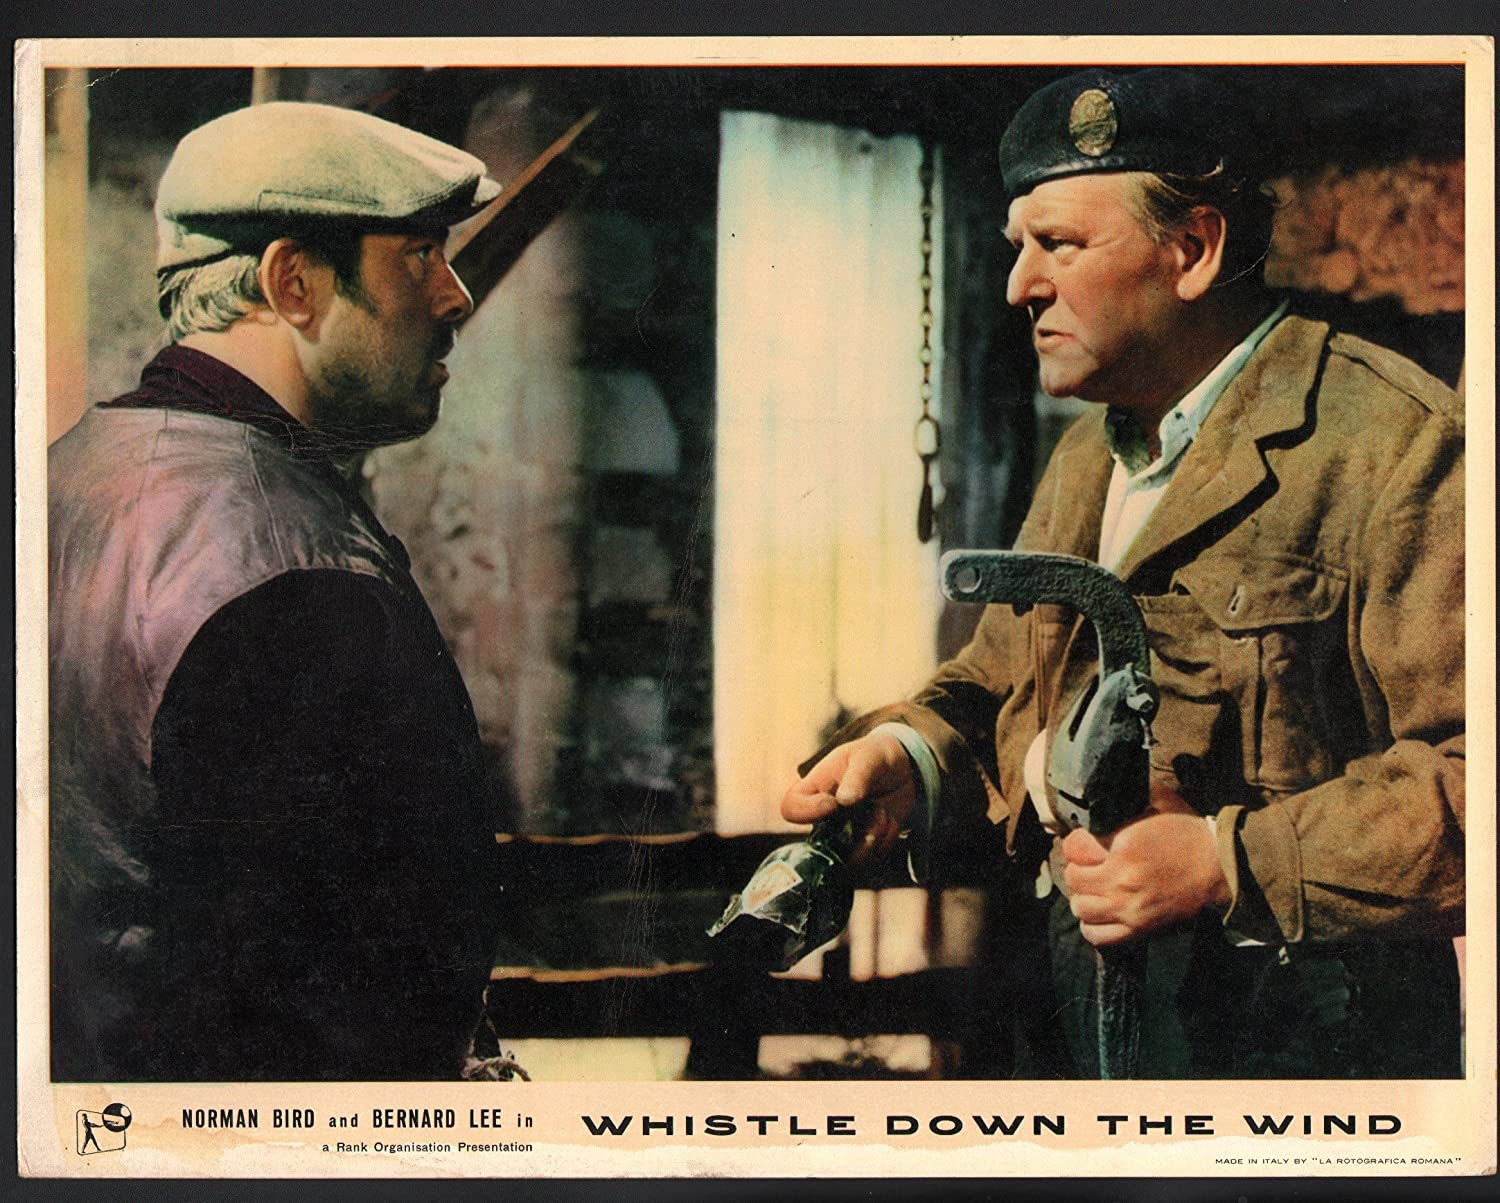 MOVIE POSTER: Whistle Down the Wind N Lobby Lee Card-Bernard and San Diego Large discharge sale Mall